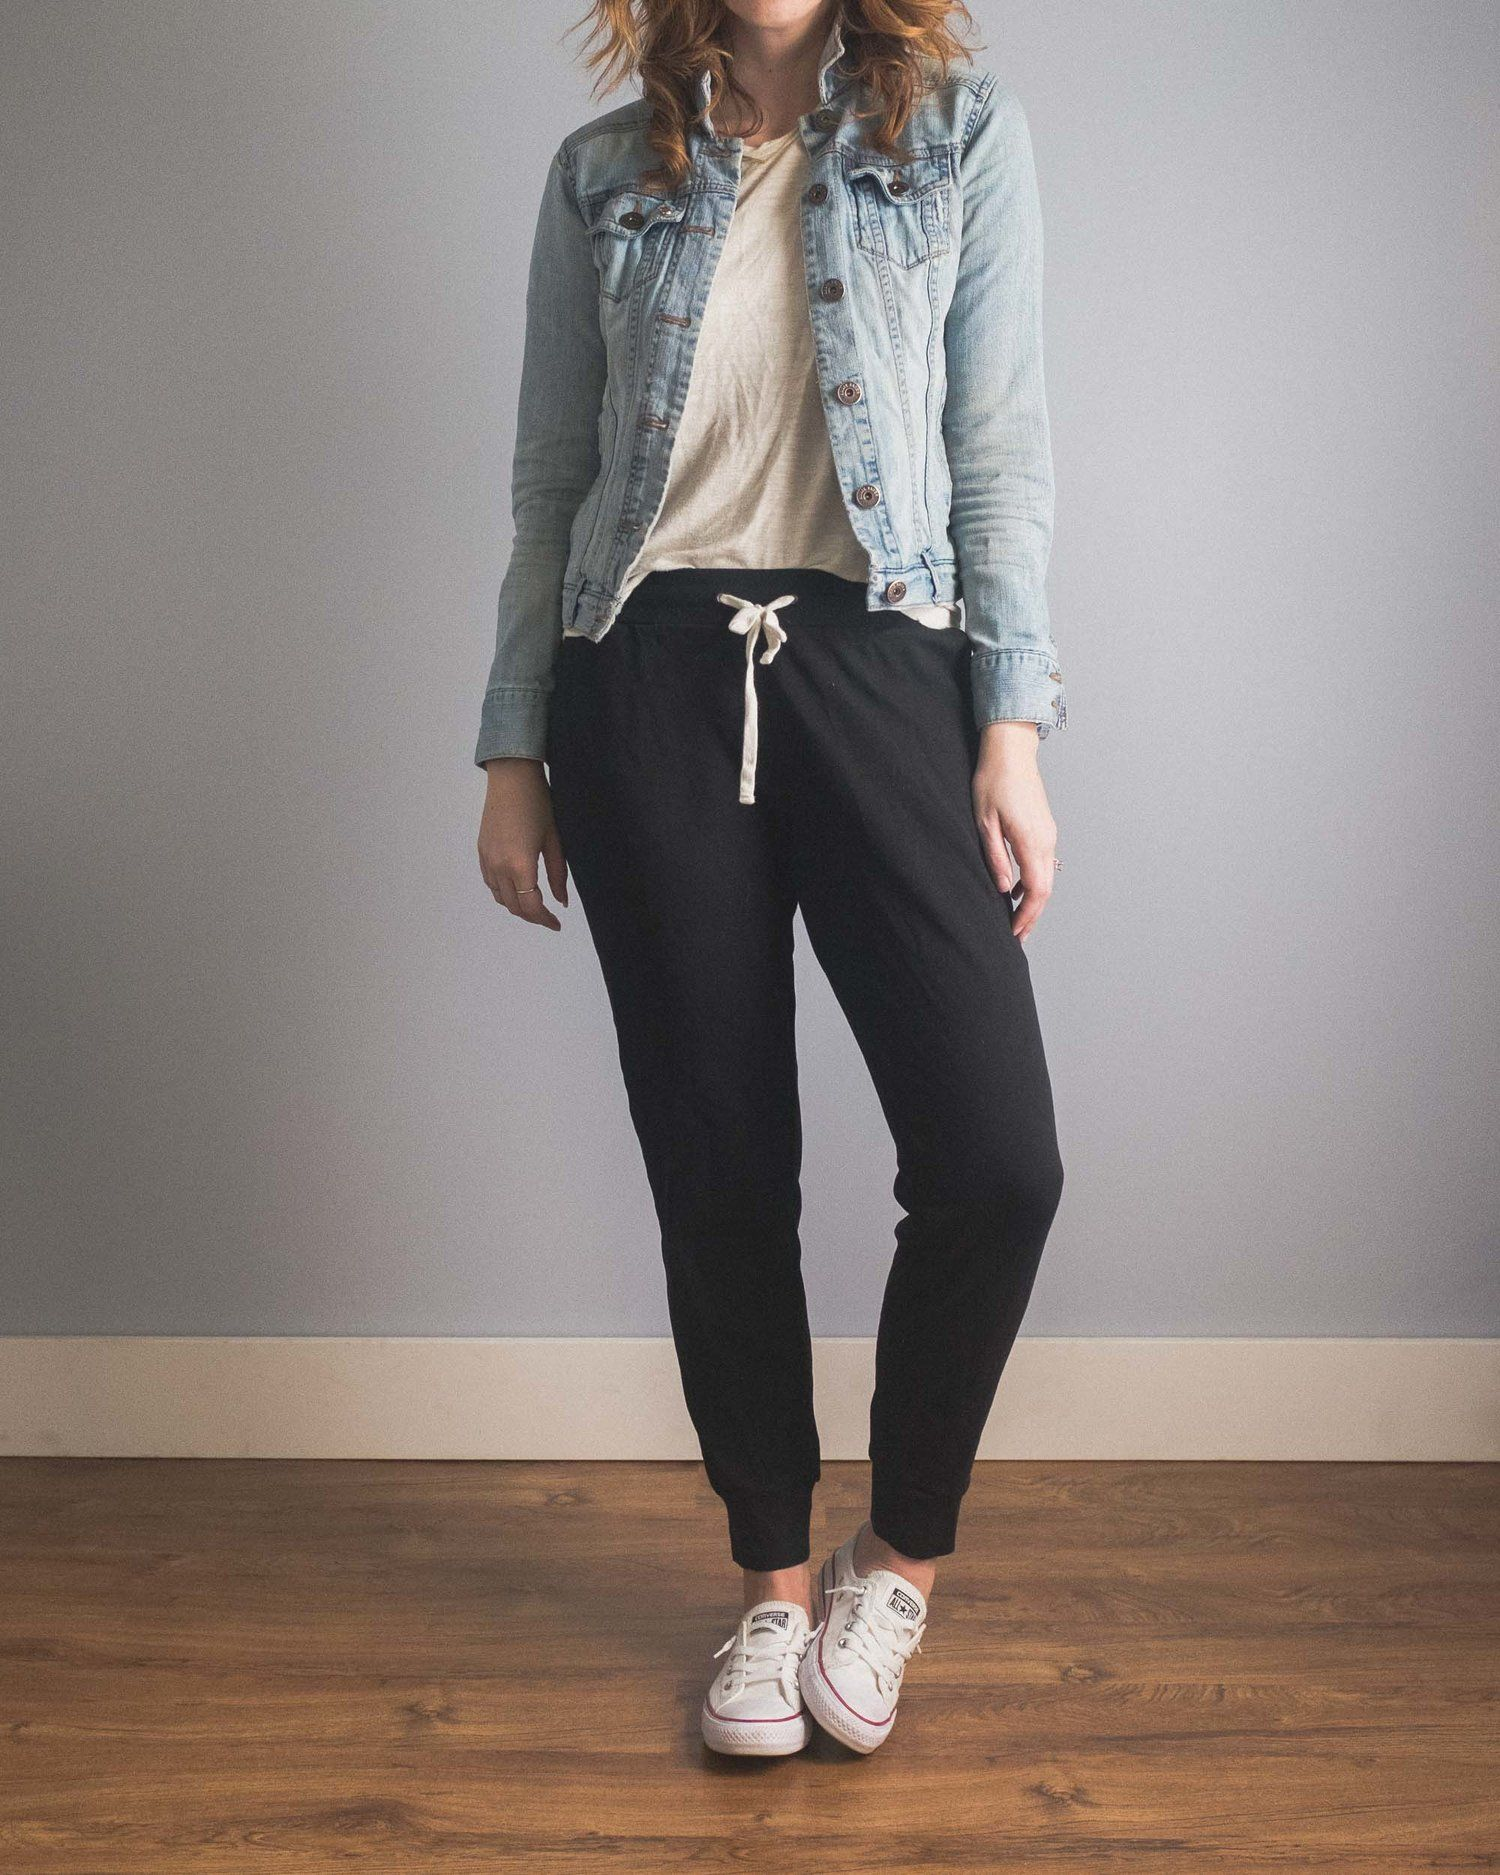 Cladwell Simplify Your Life With A Capsule Wardrobe Worn Jean Jacket Cute Sweatpants Outfit Jean Jacket Outfits [ 1875 x 1500 Pixel ]